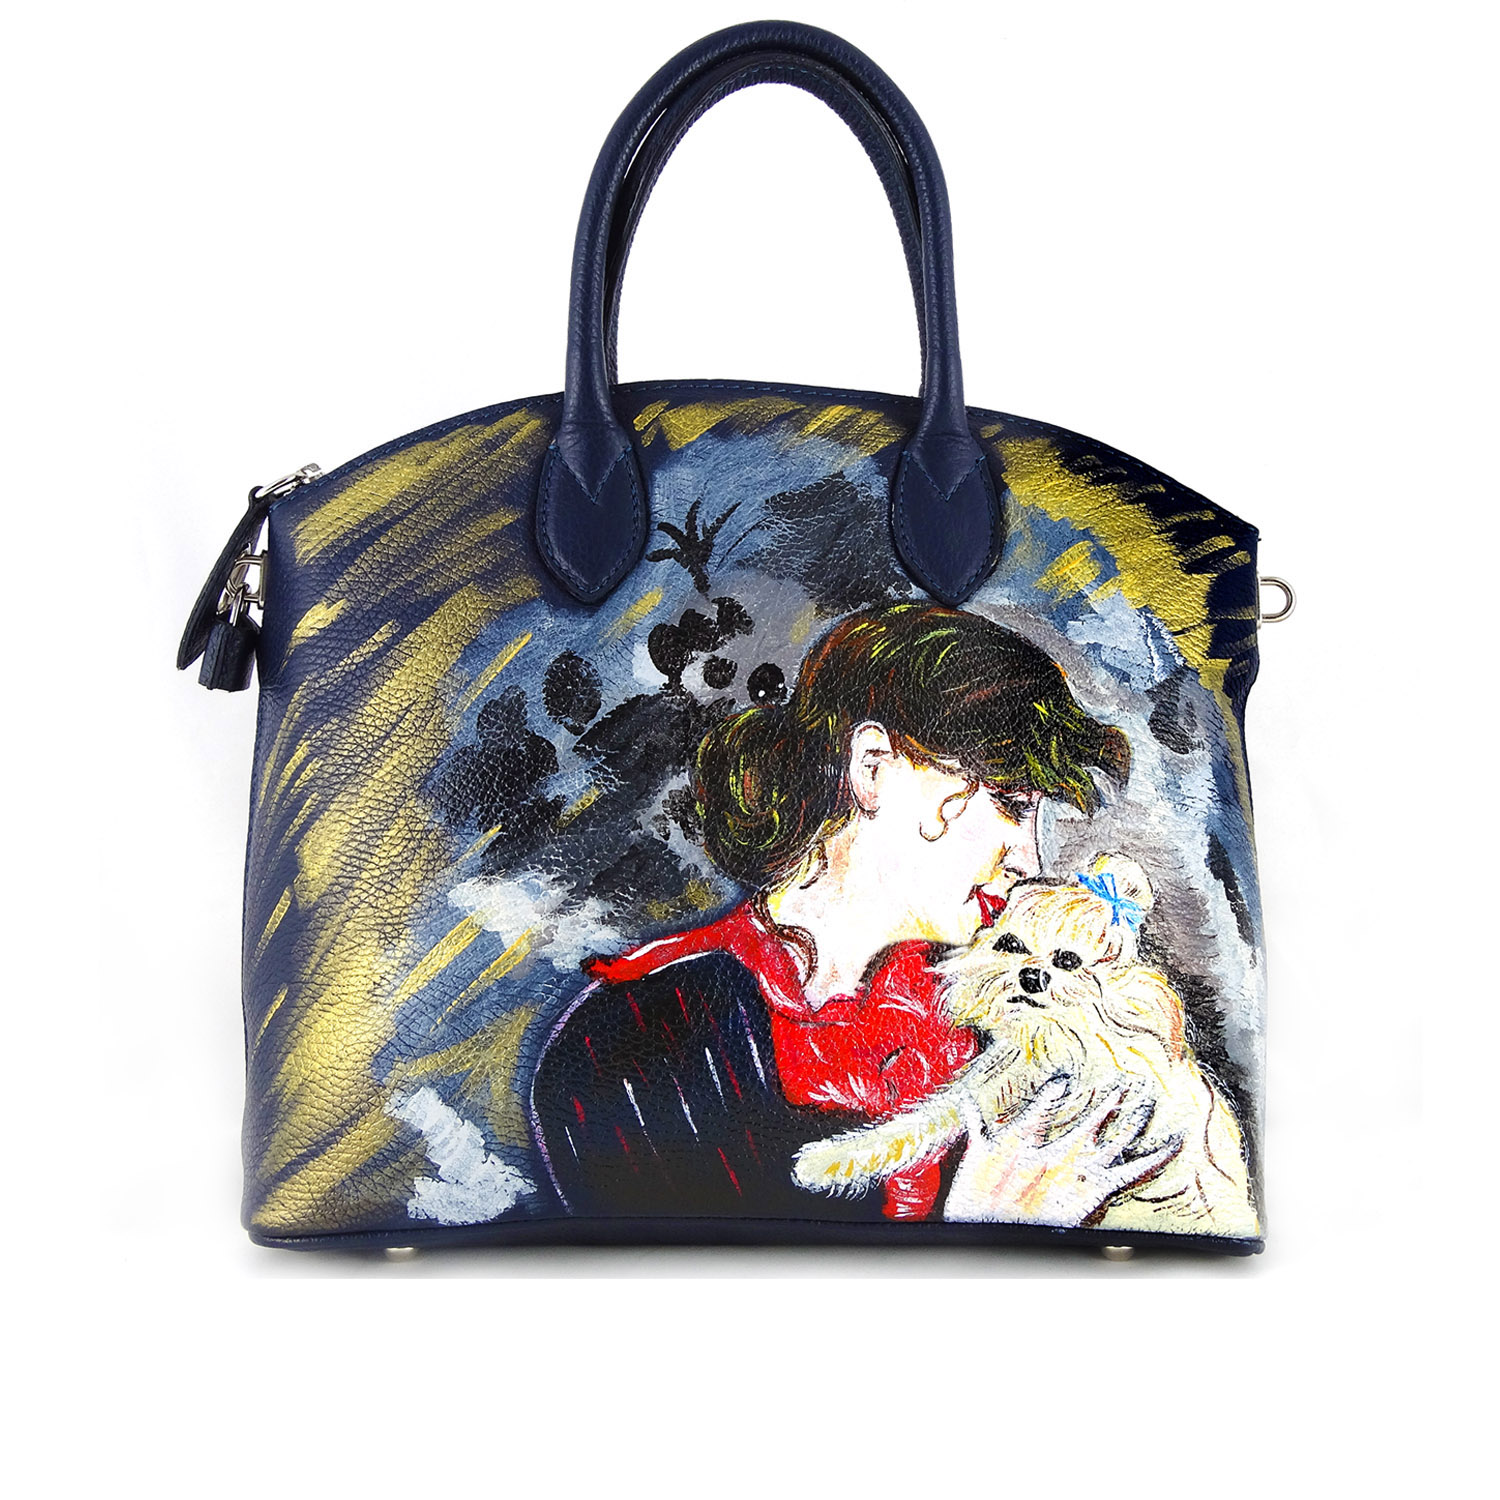 Hand painted bag - Portrait of Madame Rejane by Boldini